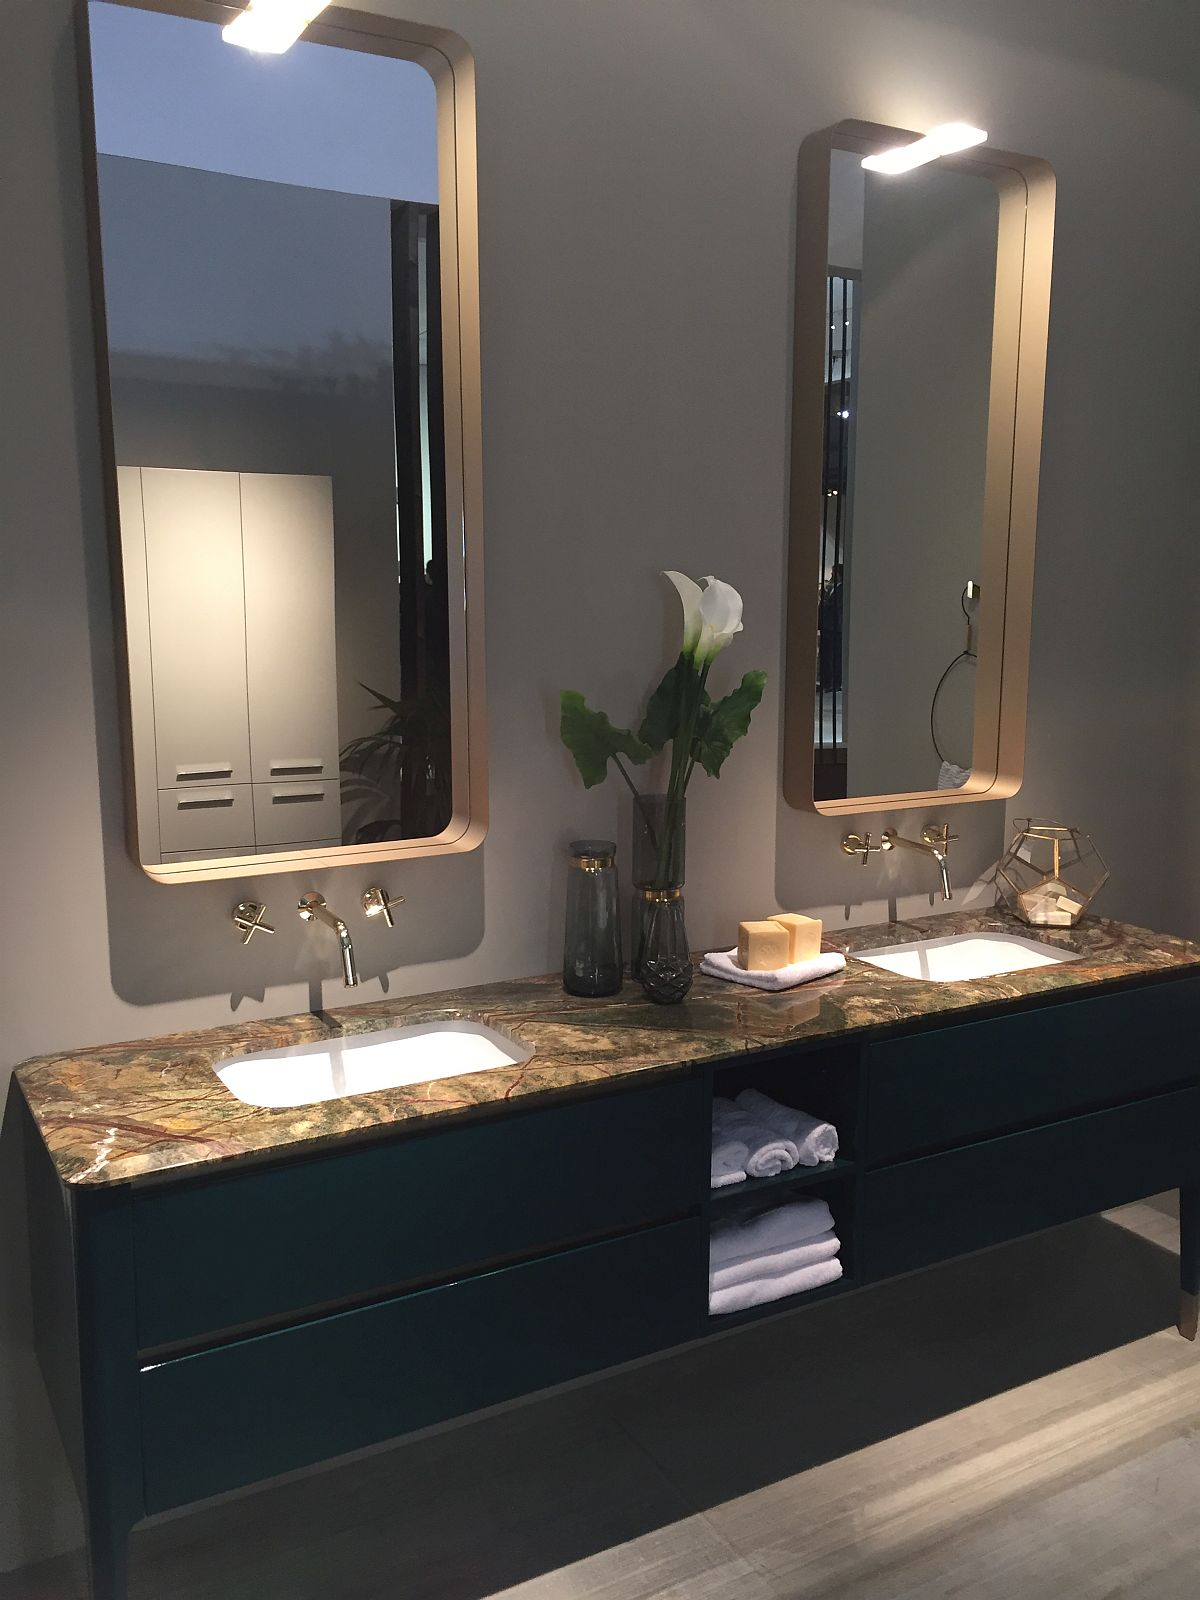 ART presented by Puntotre Bathrooms at Salone del Mobile 2015